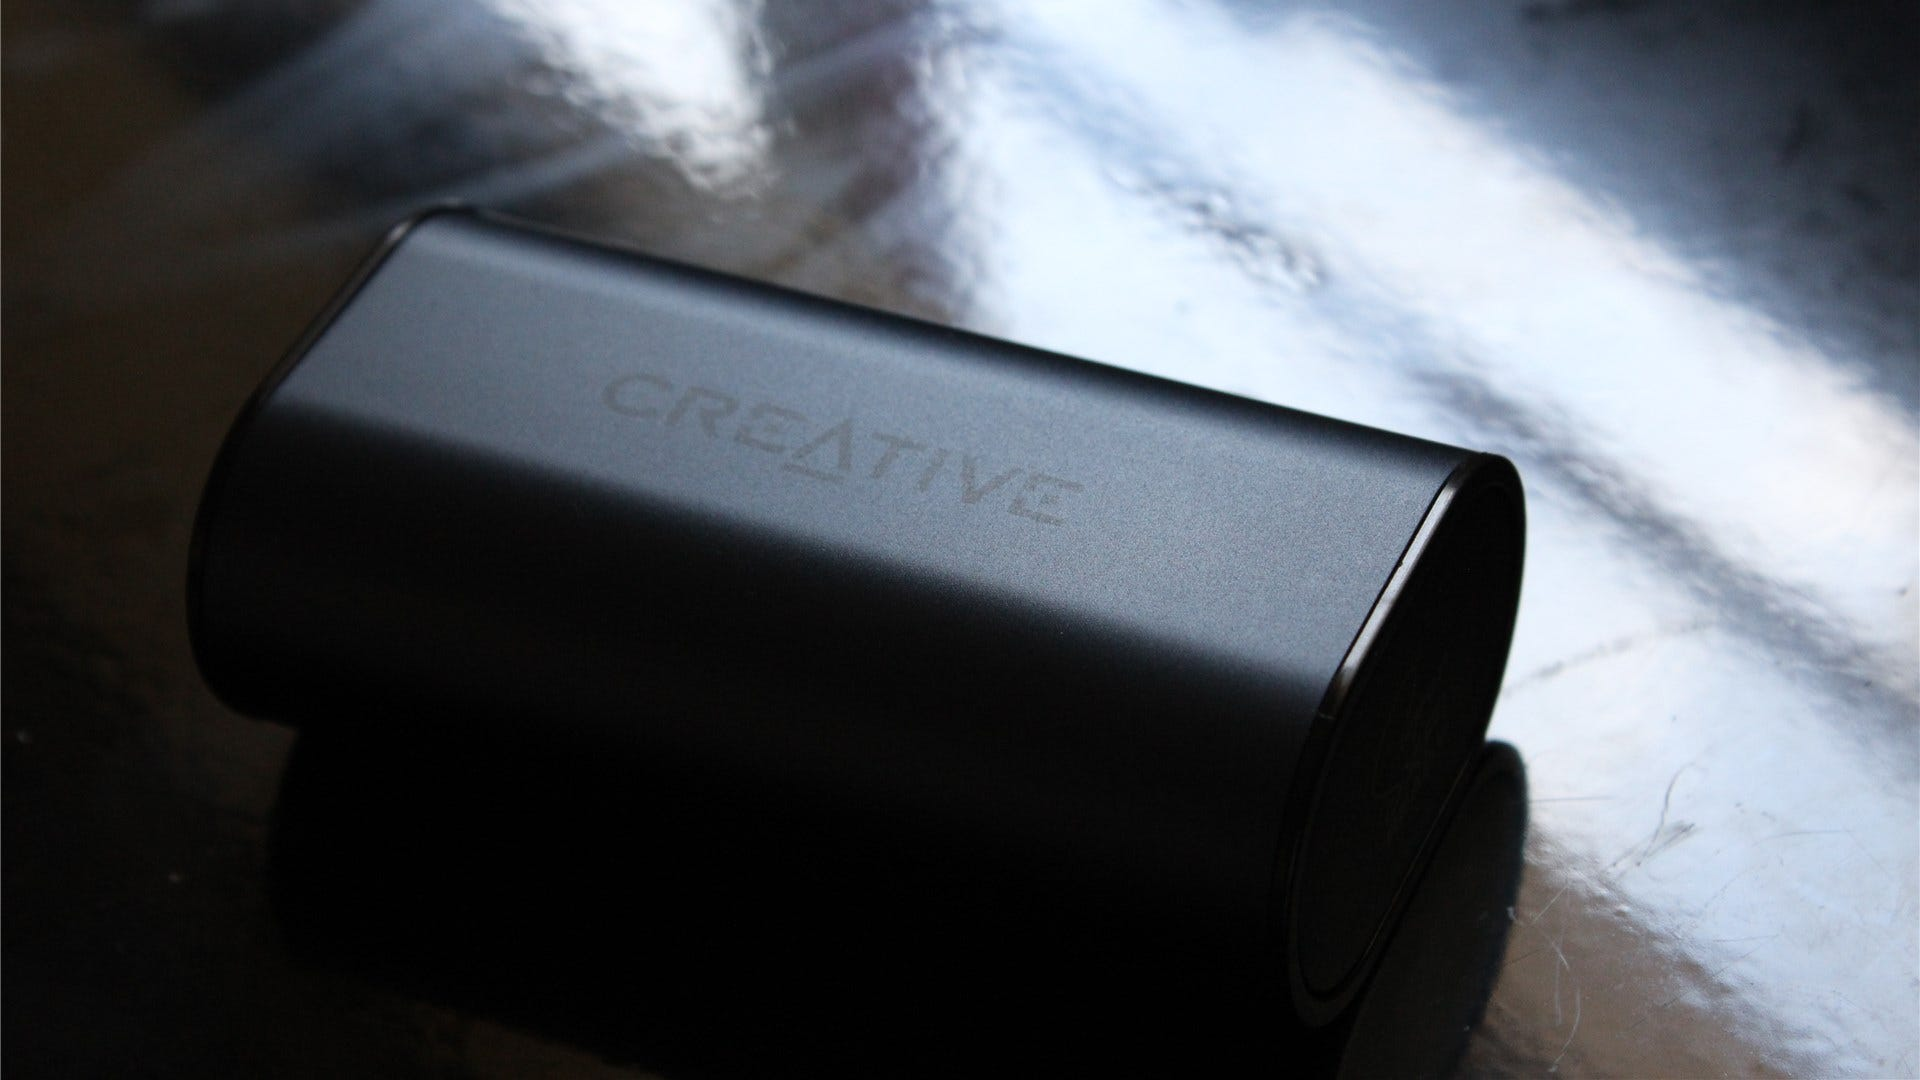 The Creative Outlier Air v2 case in low light on a glossy black background